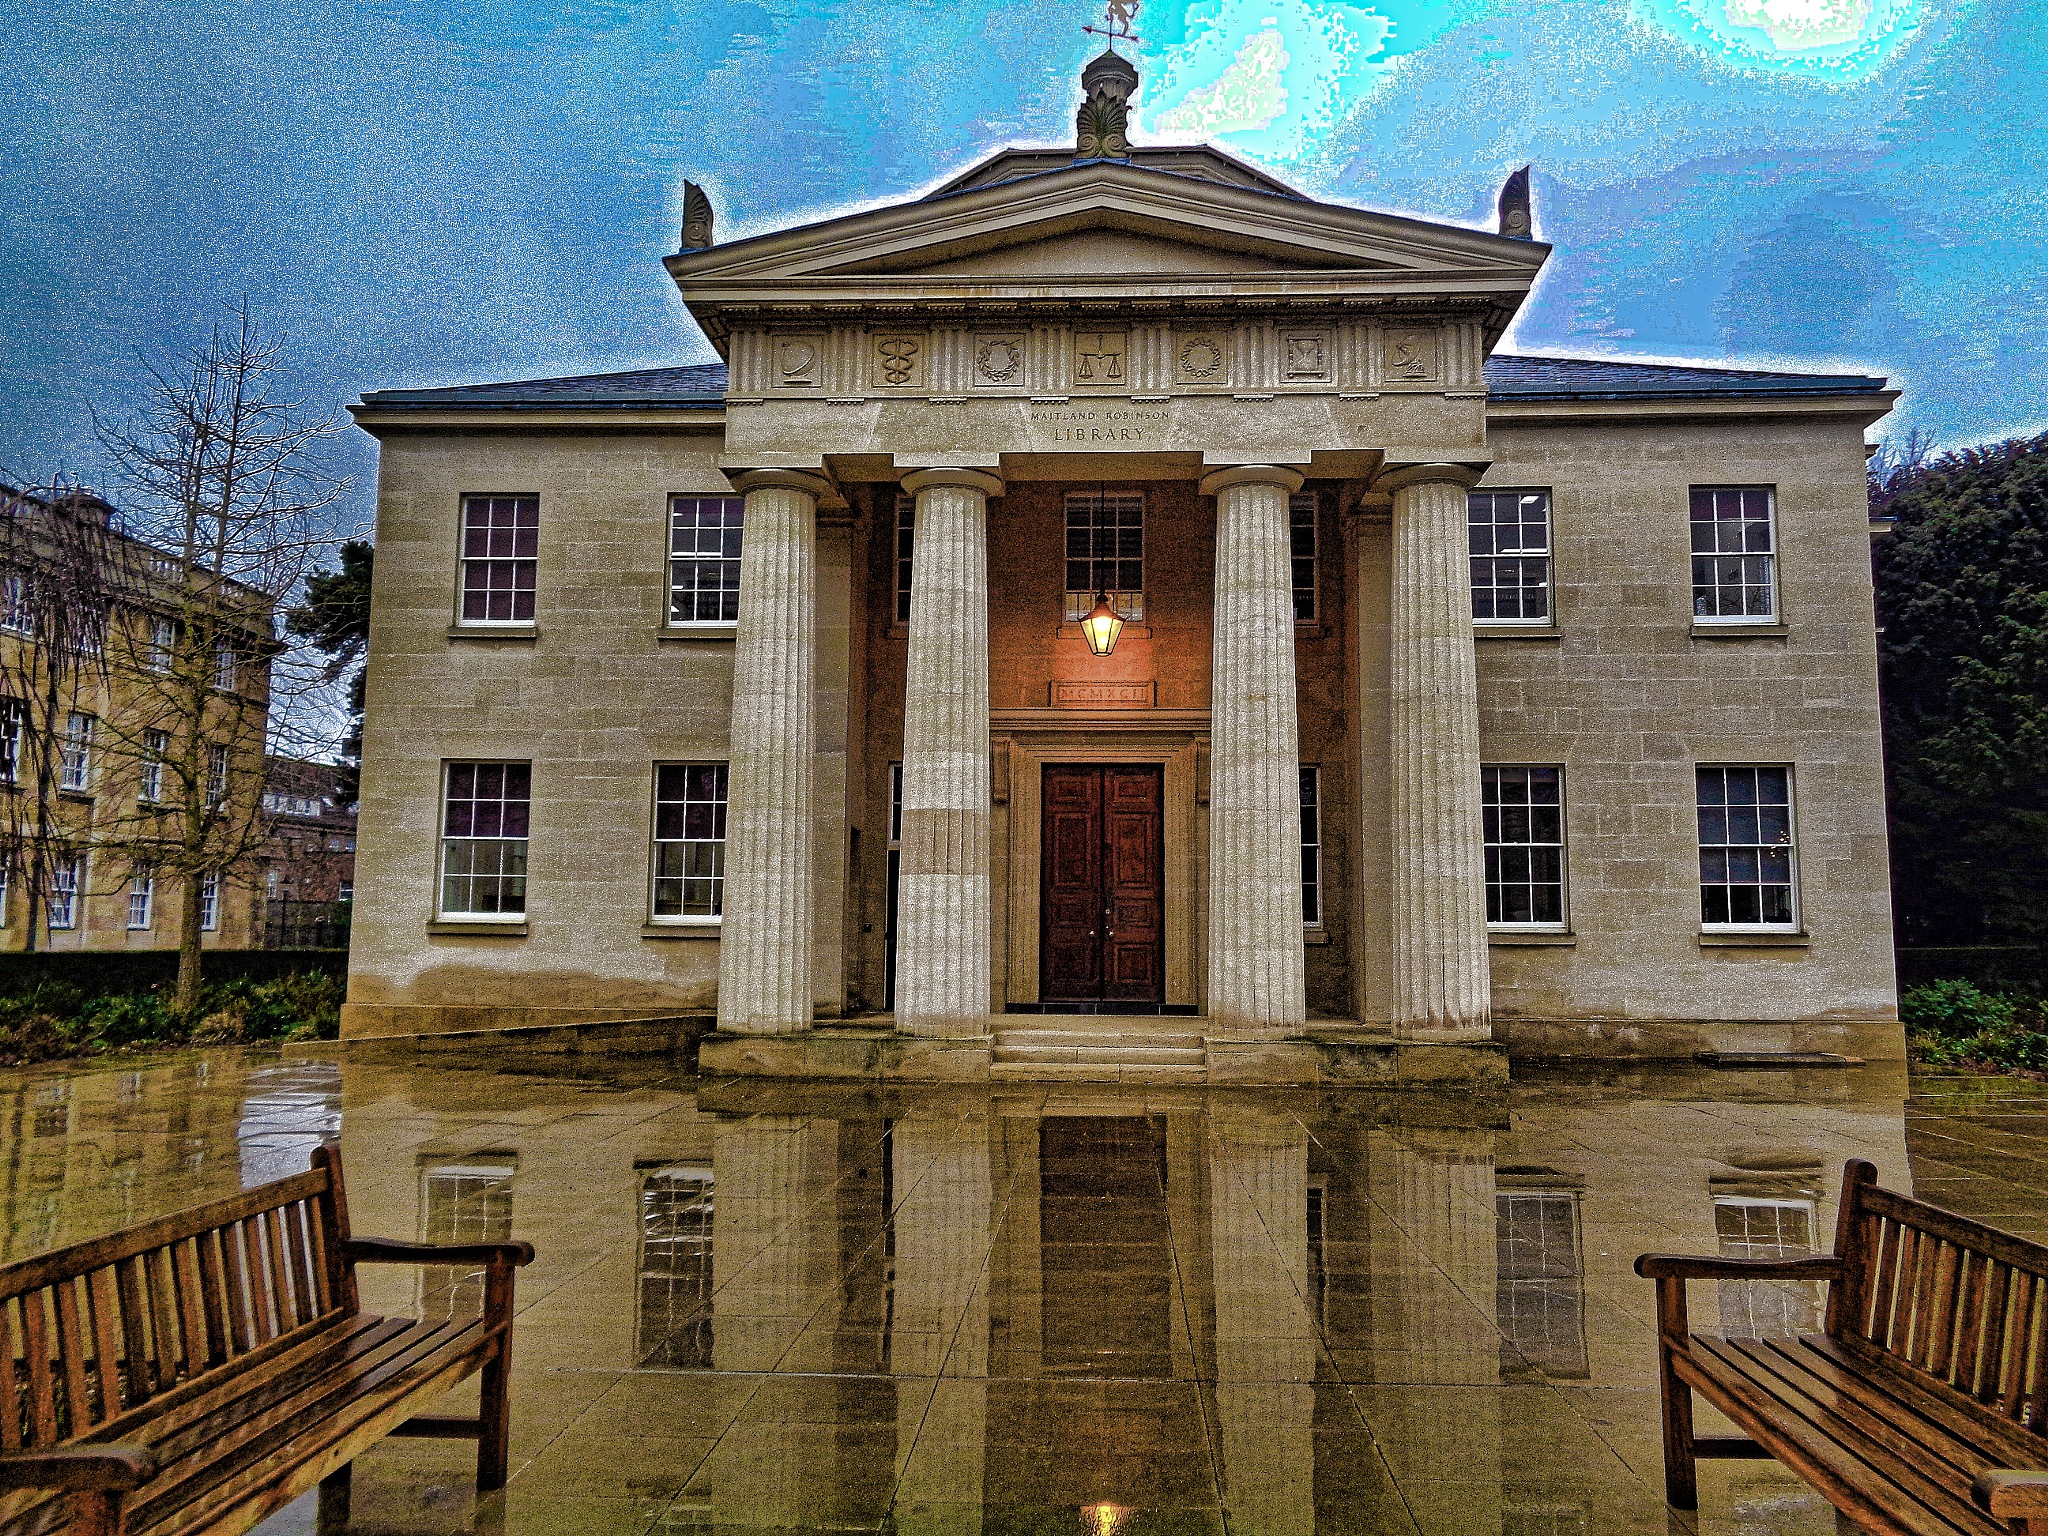 Photo in Architecture #cambridge #downing college #college #downing #library #columns #education #seats #england